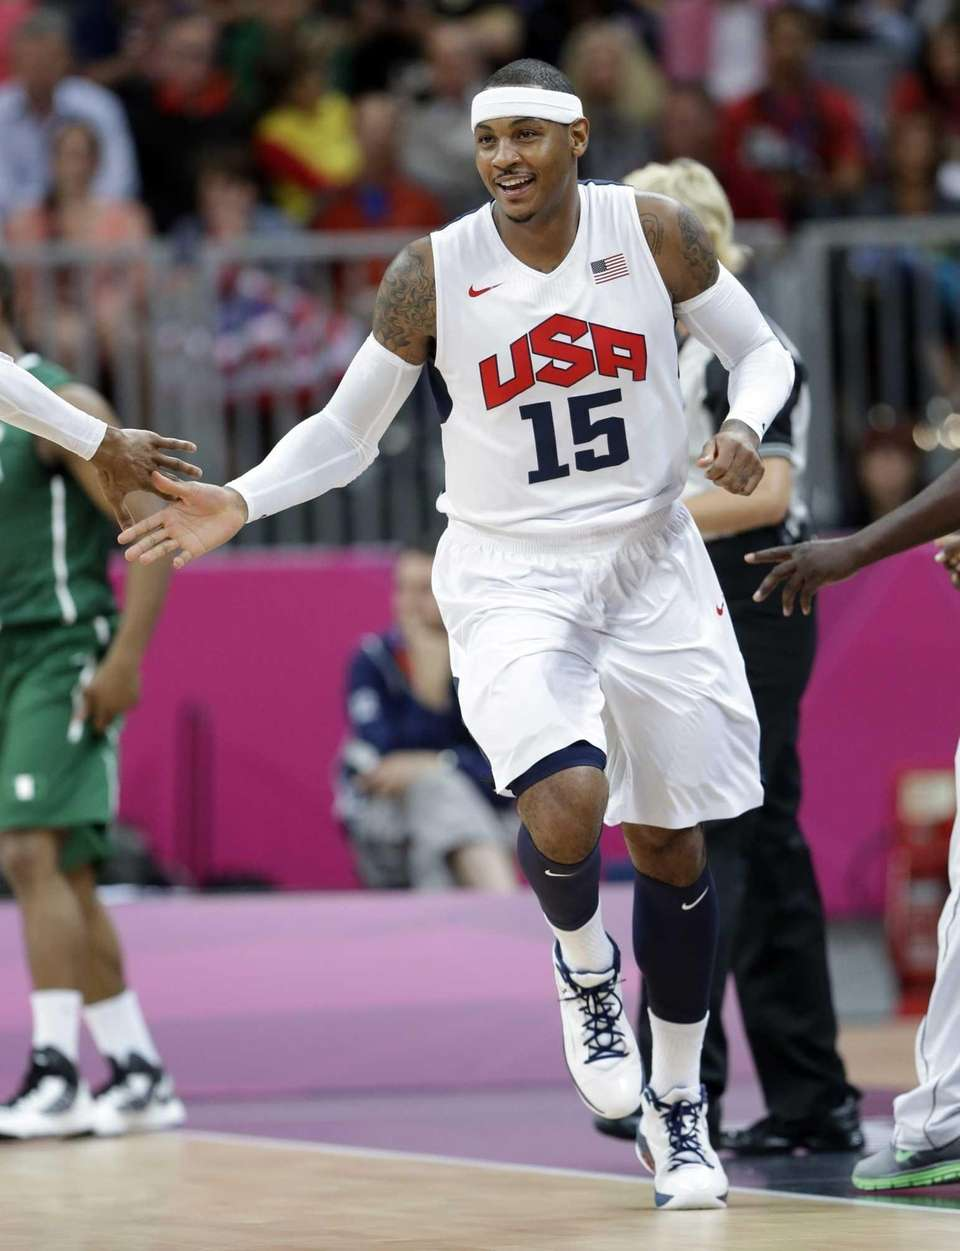 USA's Carmelo Anthony celebrates a score against Nigeria